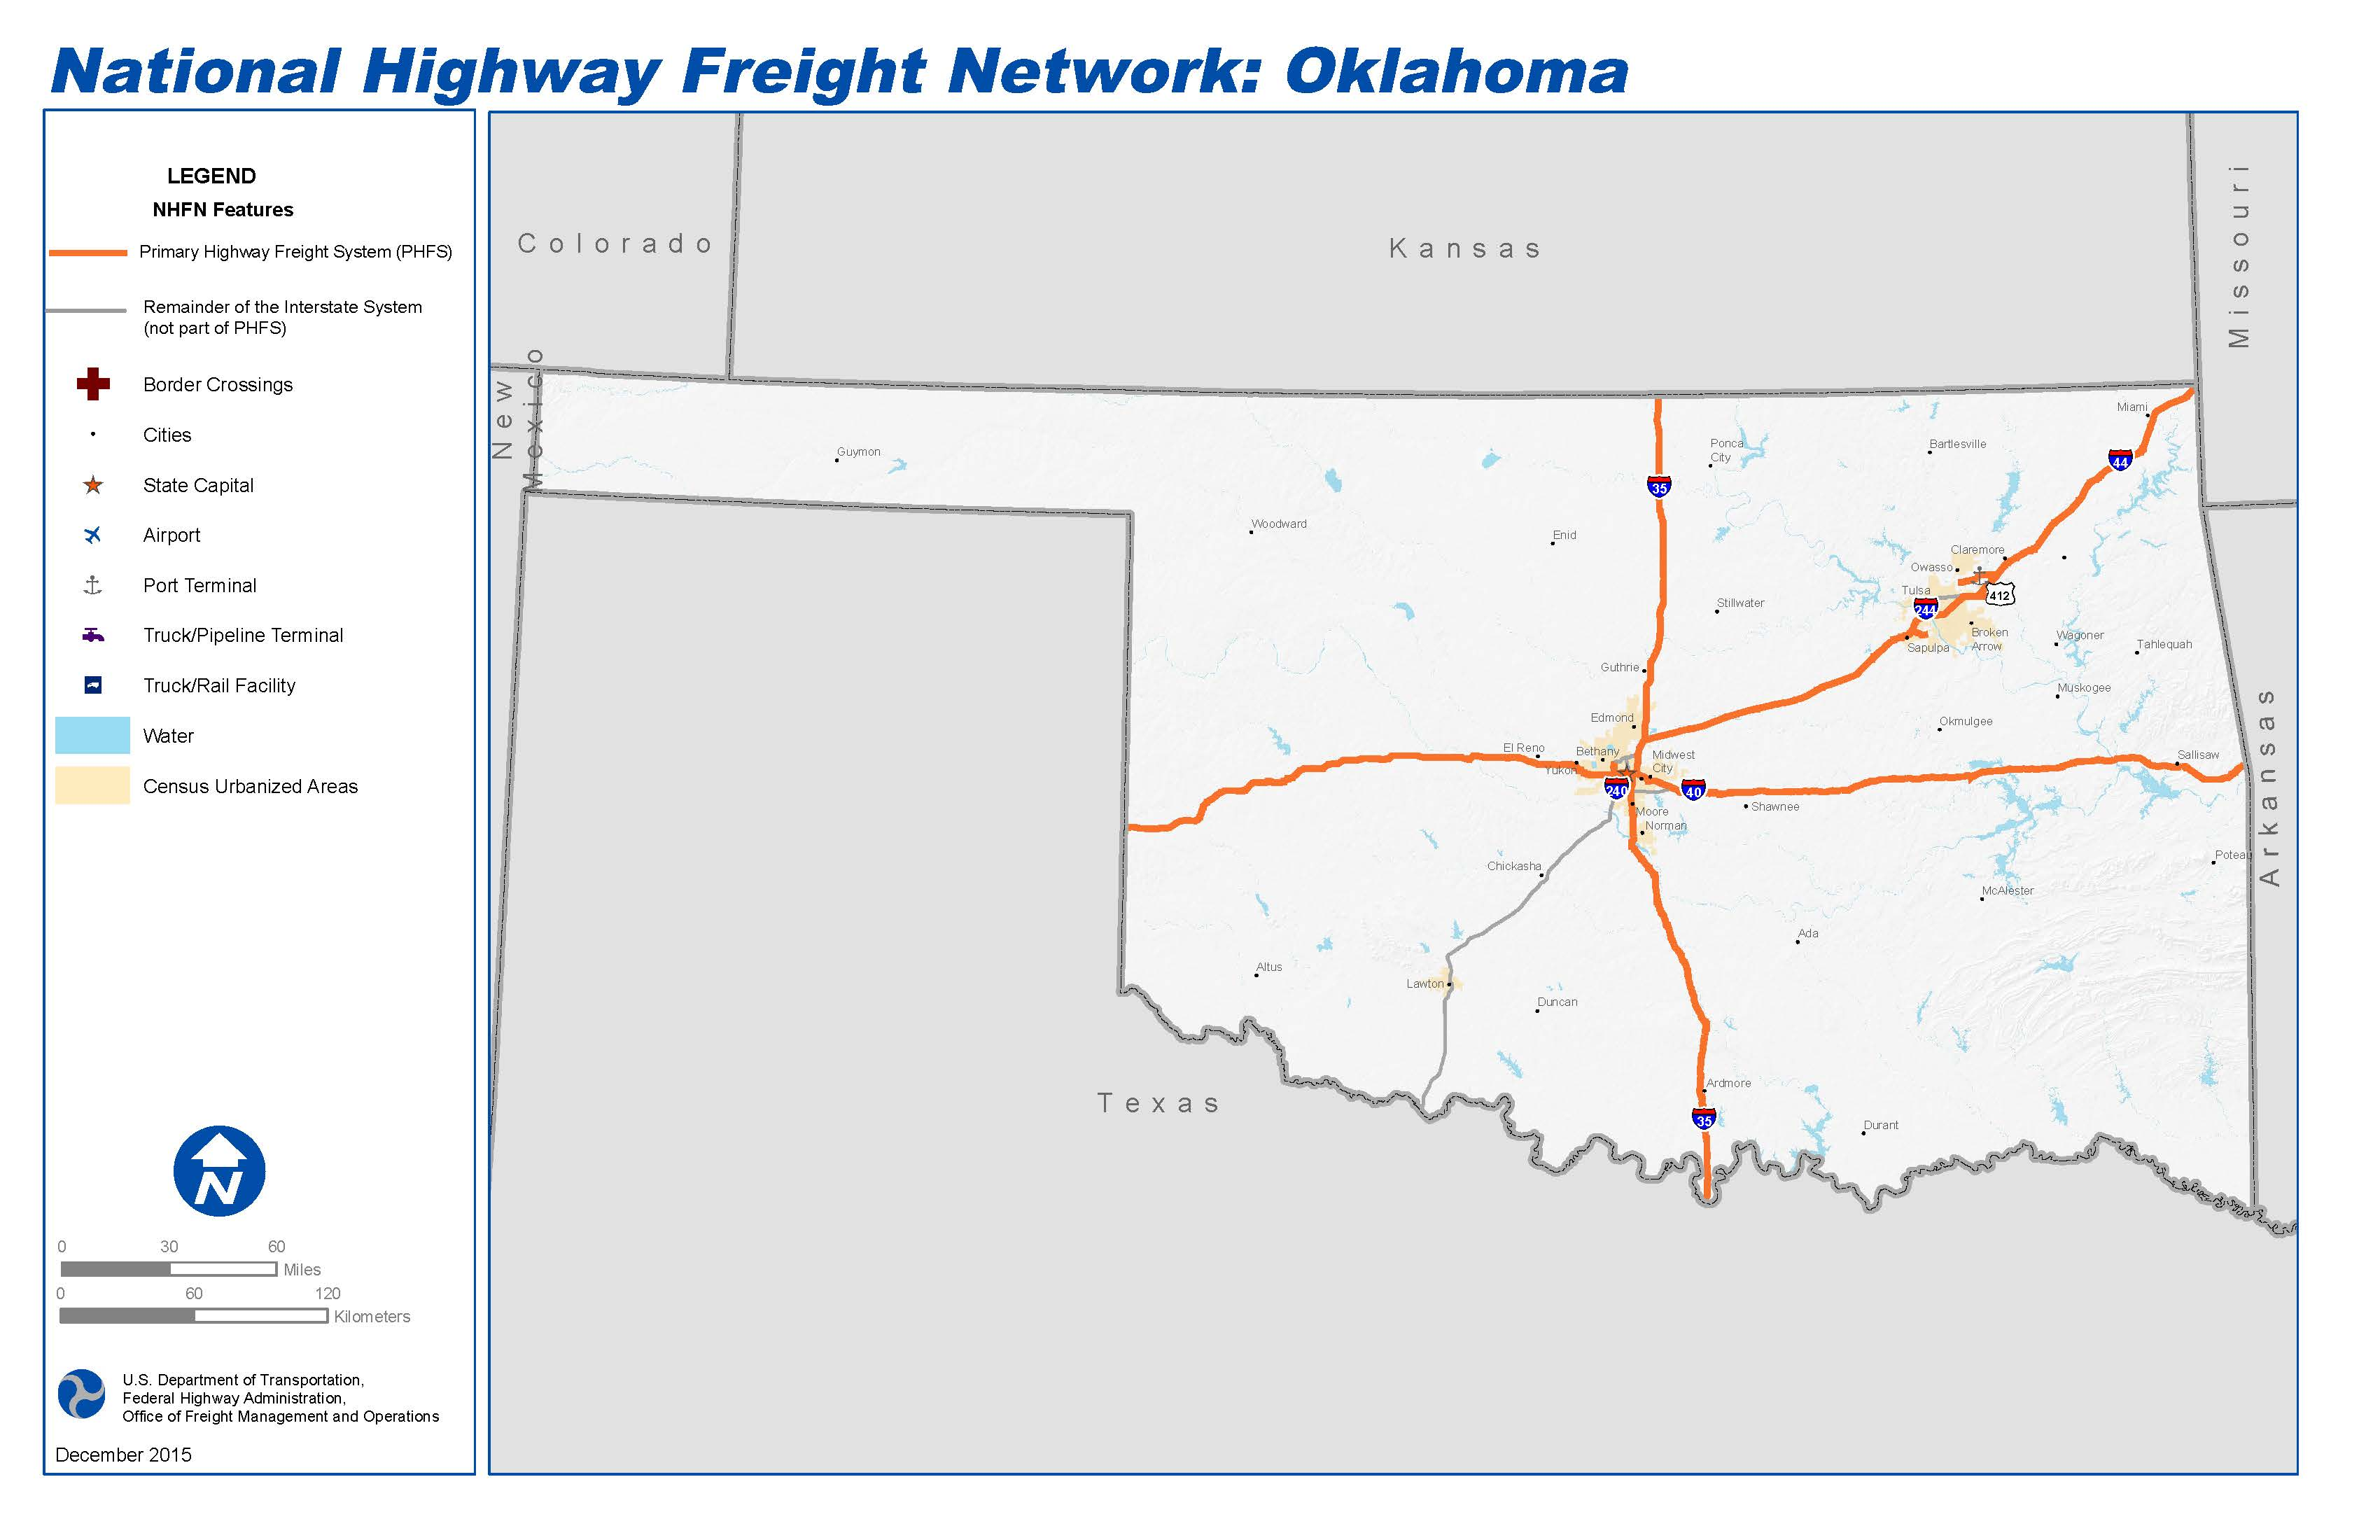 National highway freight network map and tables for oklahoma high resolution images sciox Choice Image